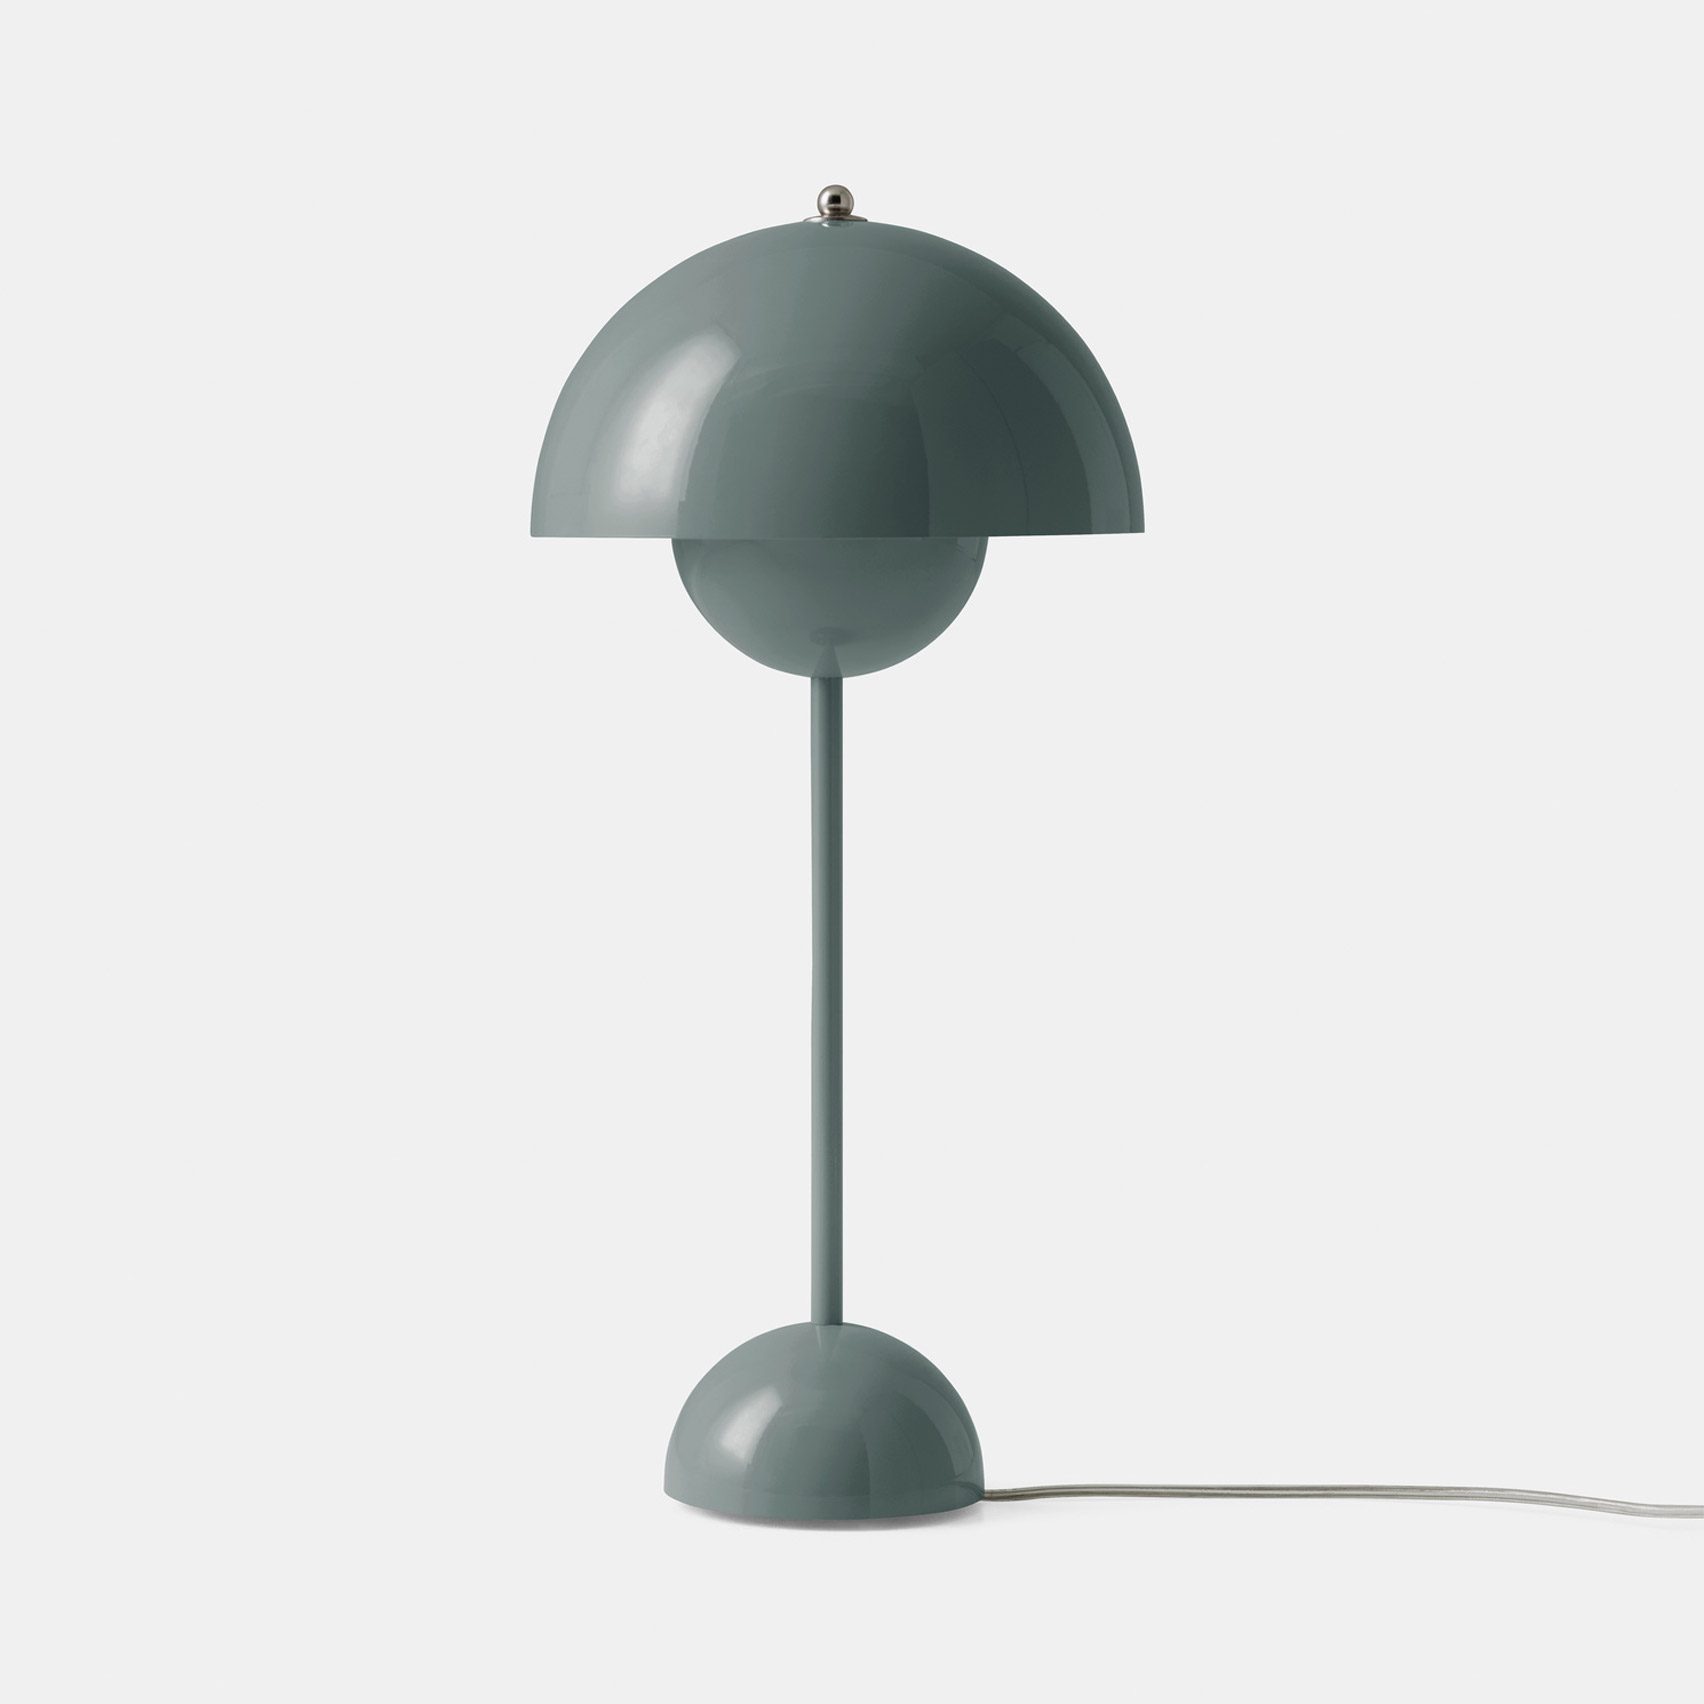 A Stone Blue Flowerpot lamp by Verner Panton for &tradition